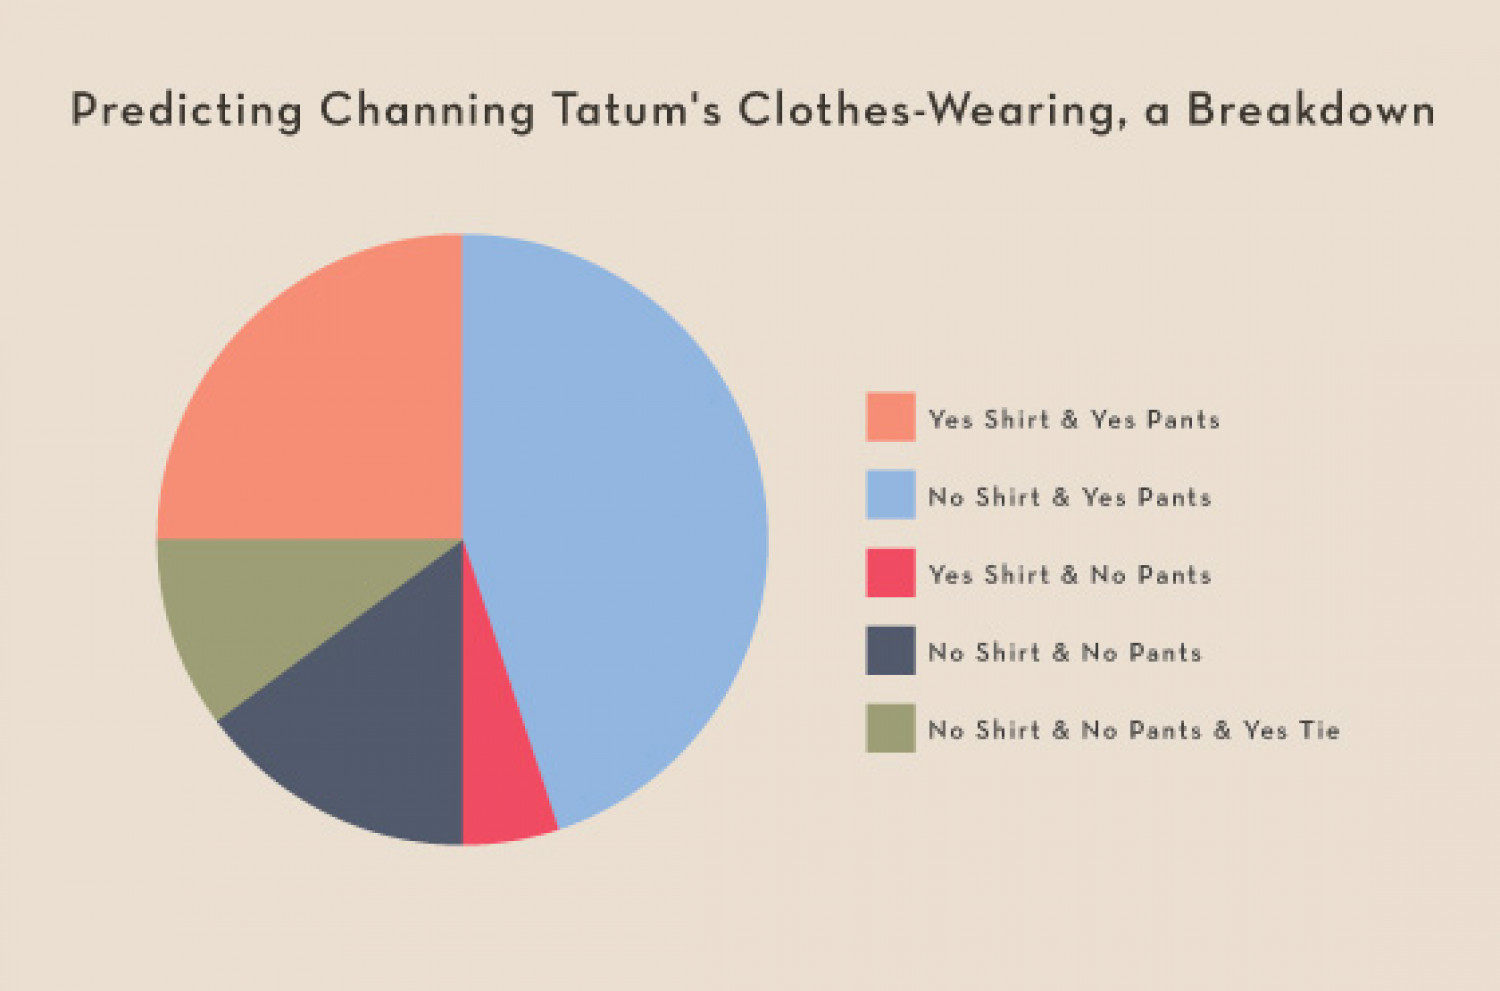 Channing Tatum's Clothes-Wearing Infographic